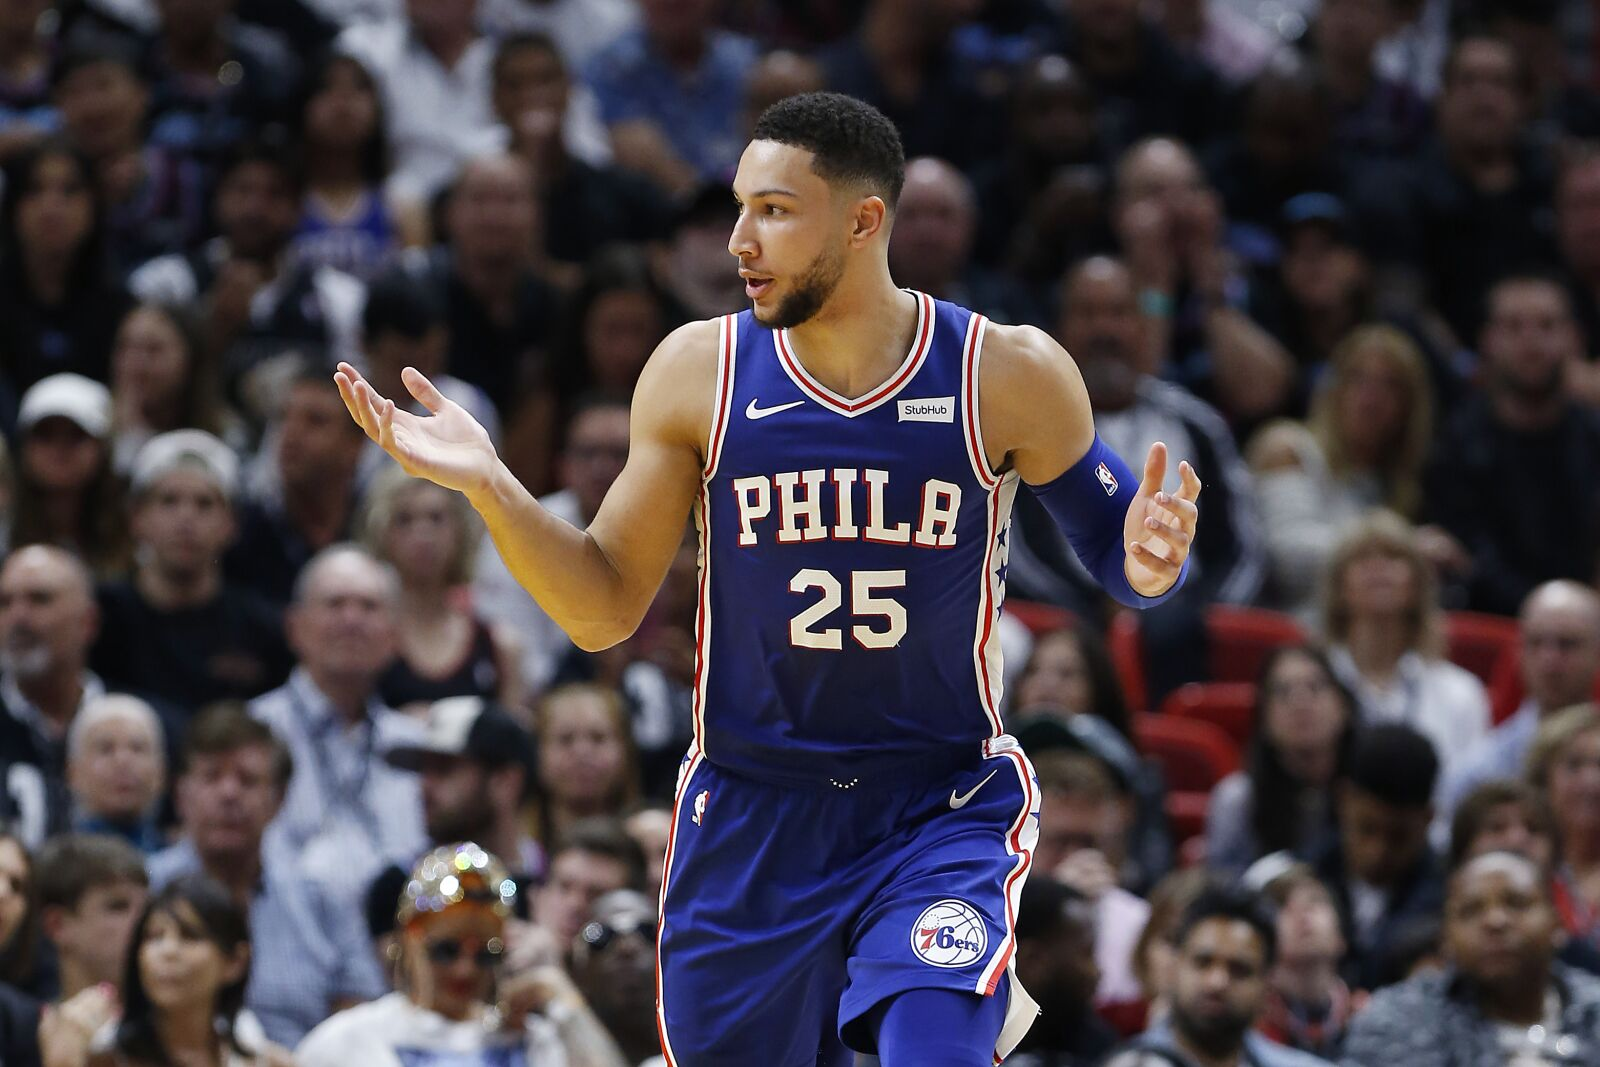 e80fdd111d6e Philadelphia 76ers 2019 playoff schedule against Brooklyn Nets released